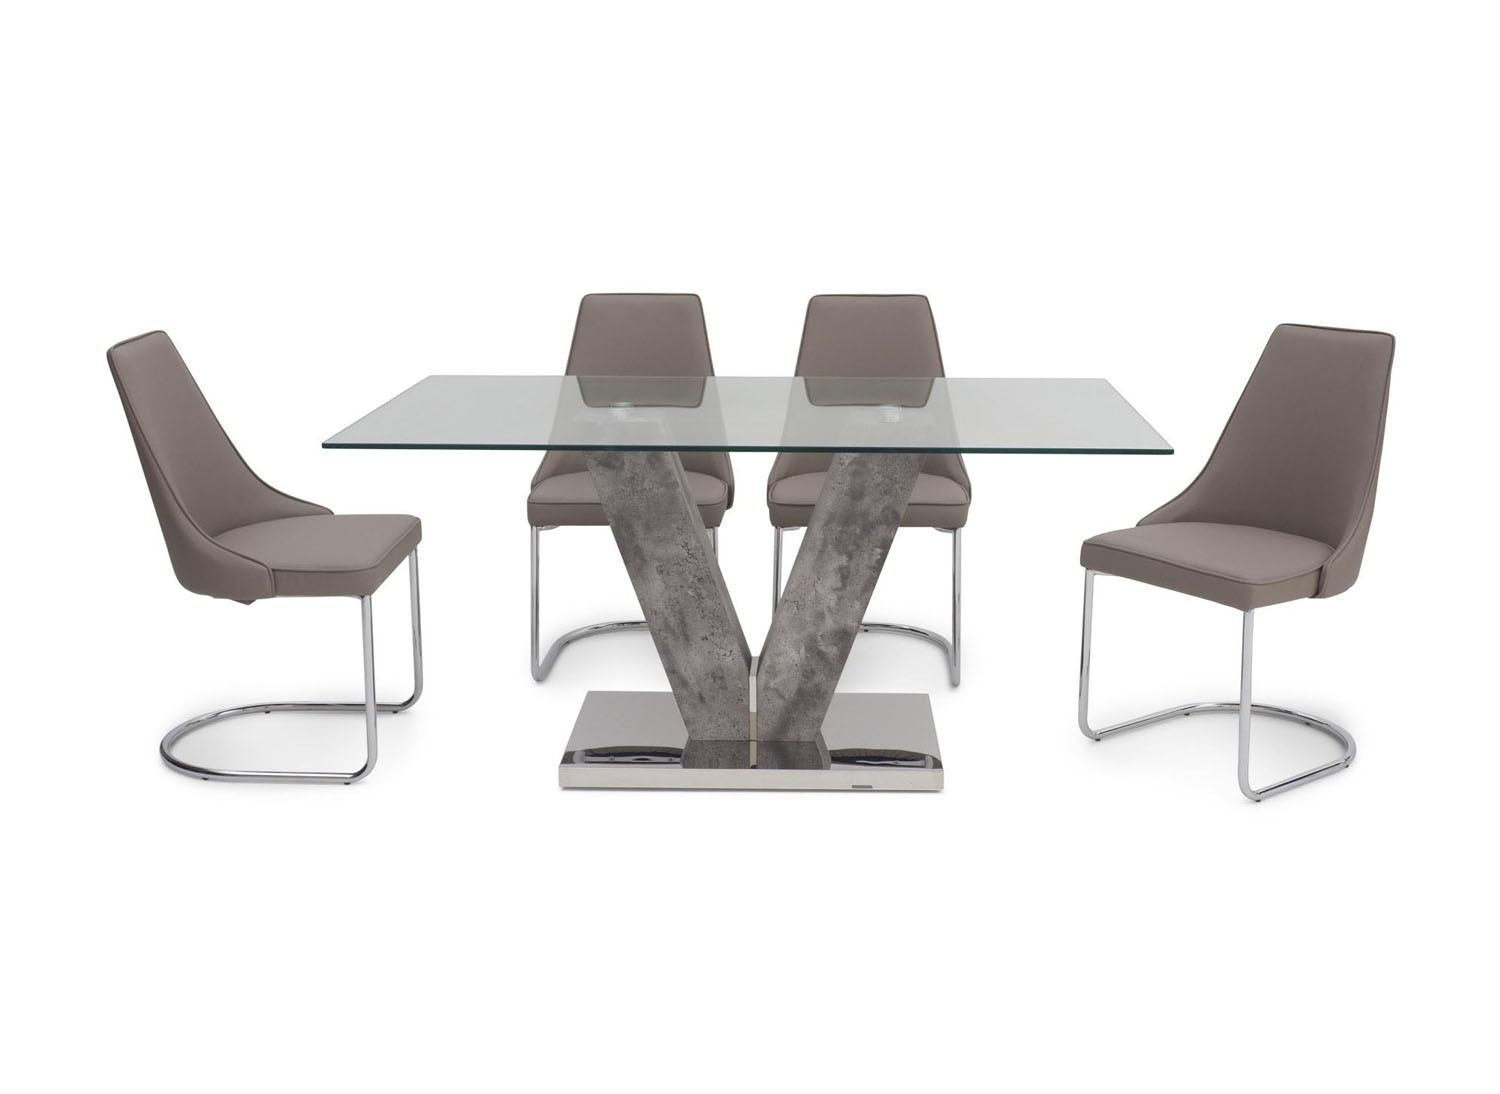 https://www.firstfurniture.co.uk/pub/media/catalog/product/d/o/dolce_dining_table_clear_mya_chair_taupe_2_3.jpg